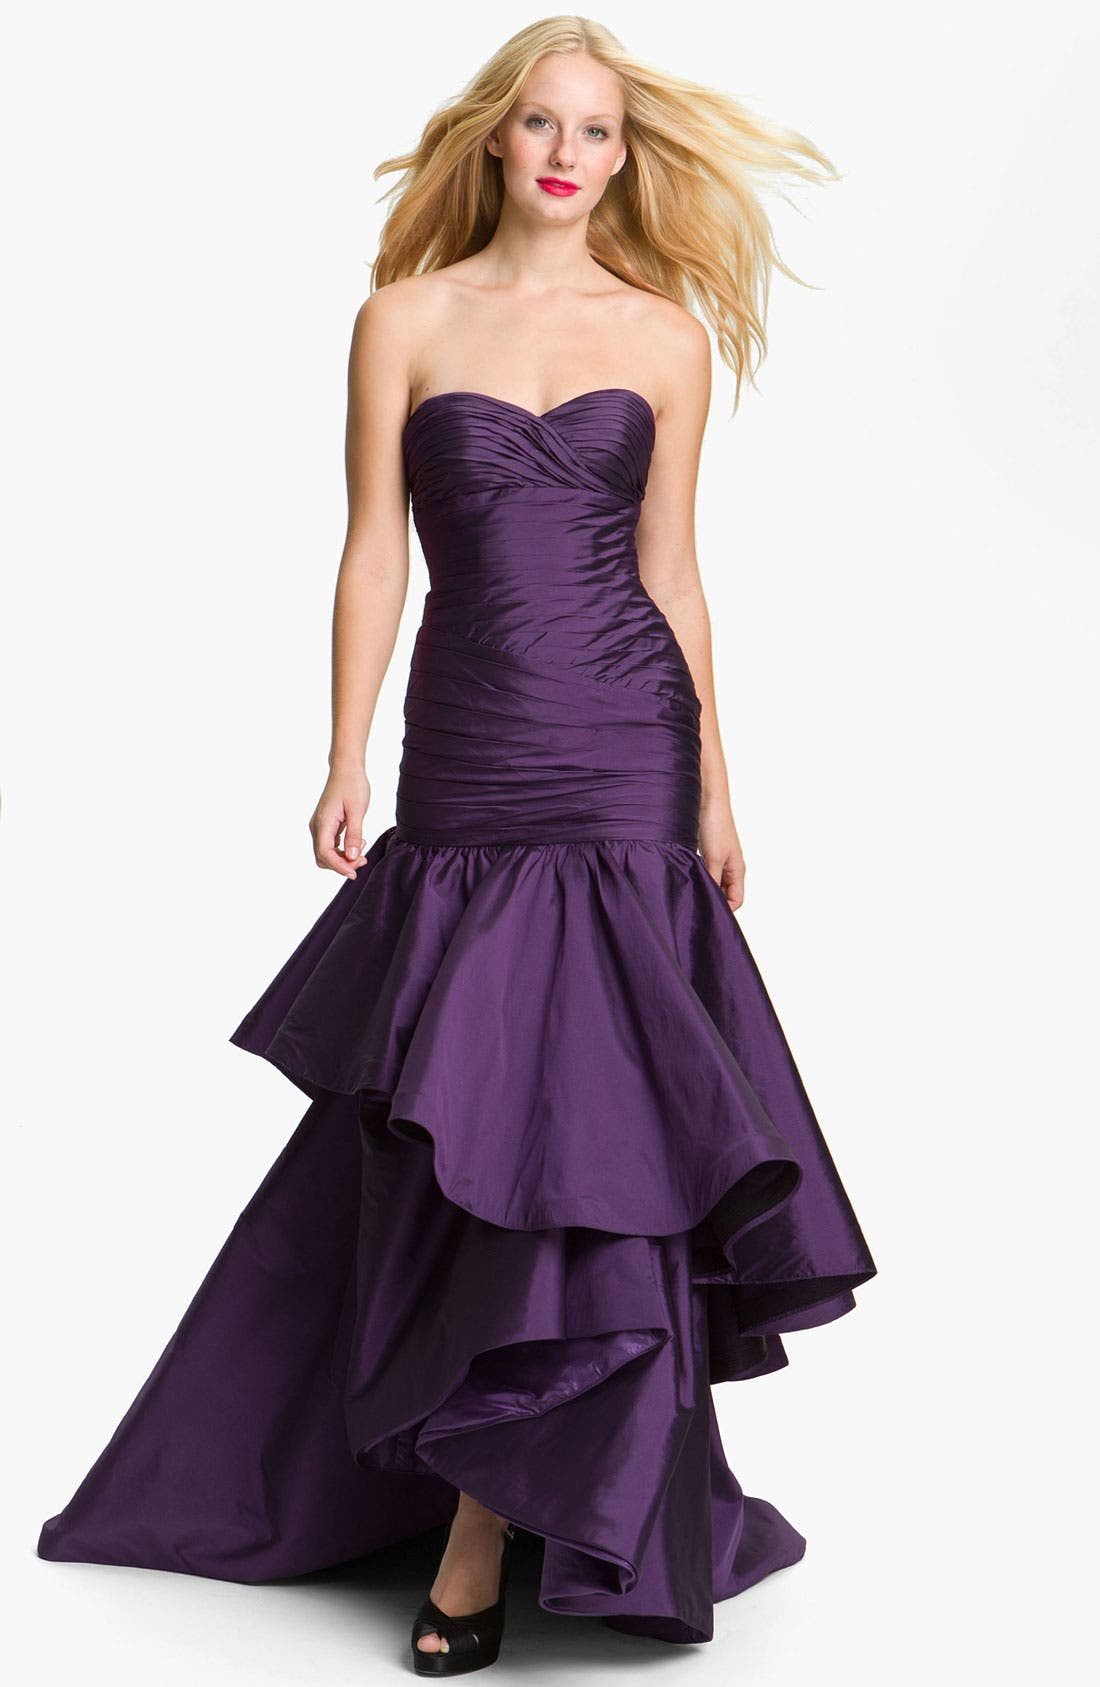 Alternate Image 1 Selected - ML Monique Lhuillier Strapless High/Low Taffeta Mermaid Gown